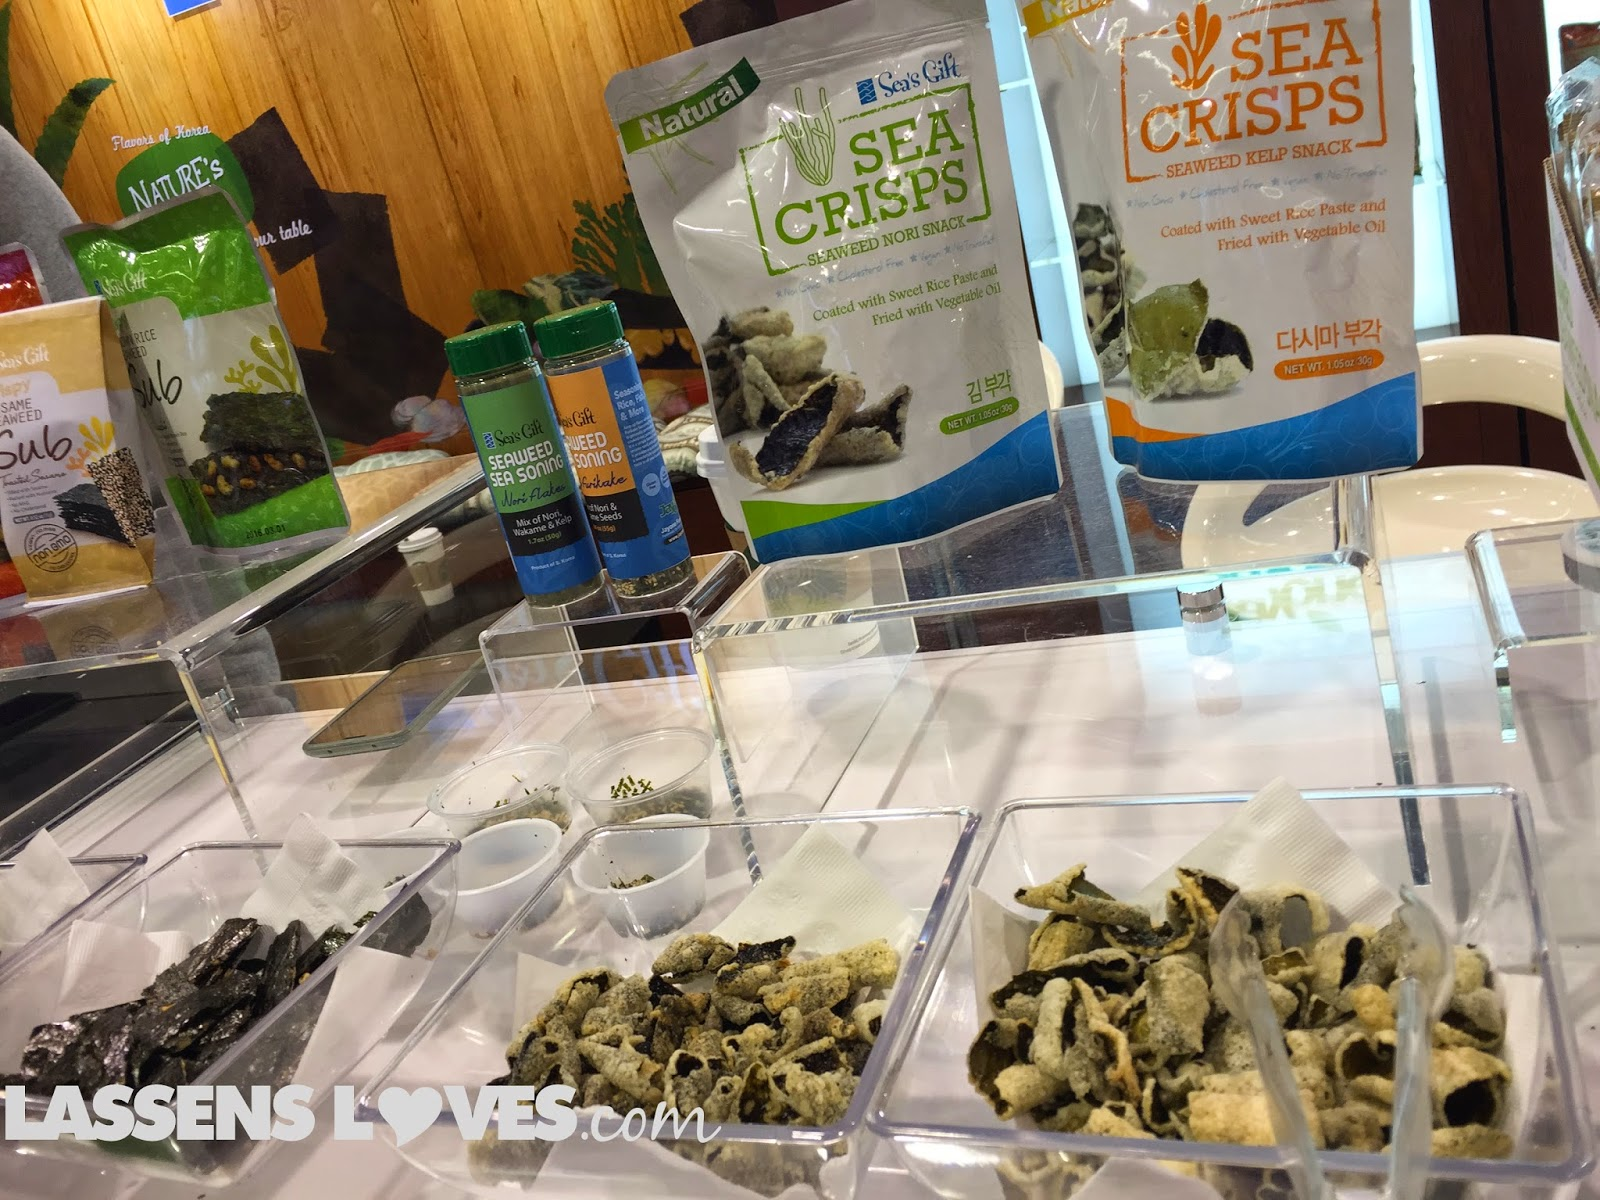 Expo+West+2015, Natural+Foods+Show, New+Natural+Products, Sea's+gift, sea+crisps